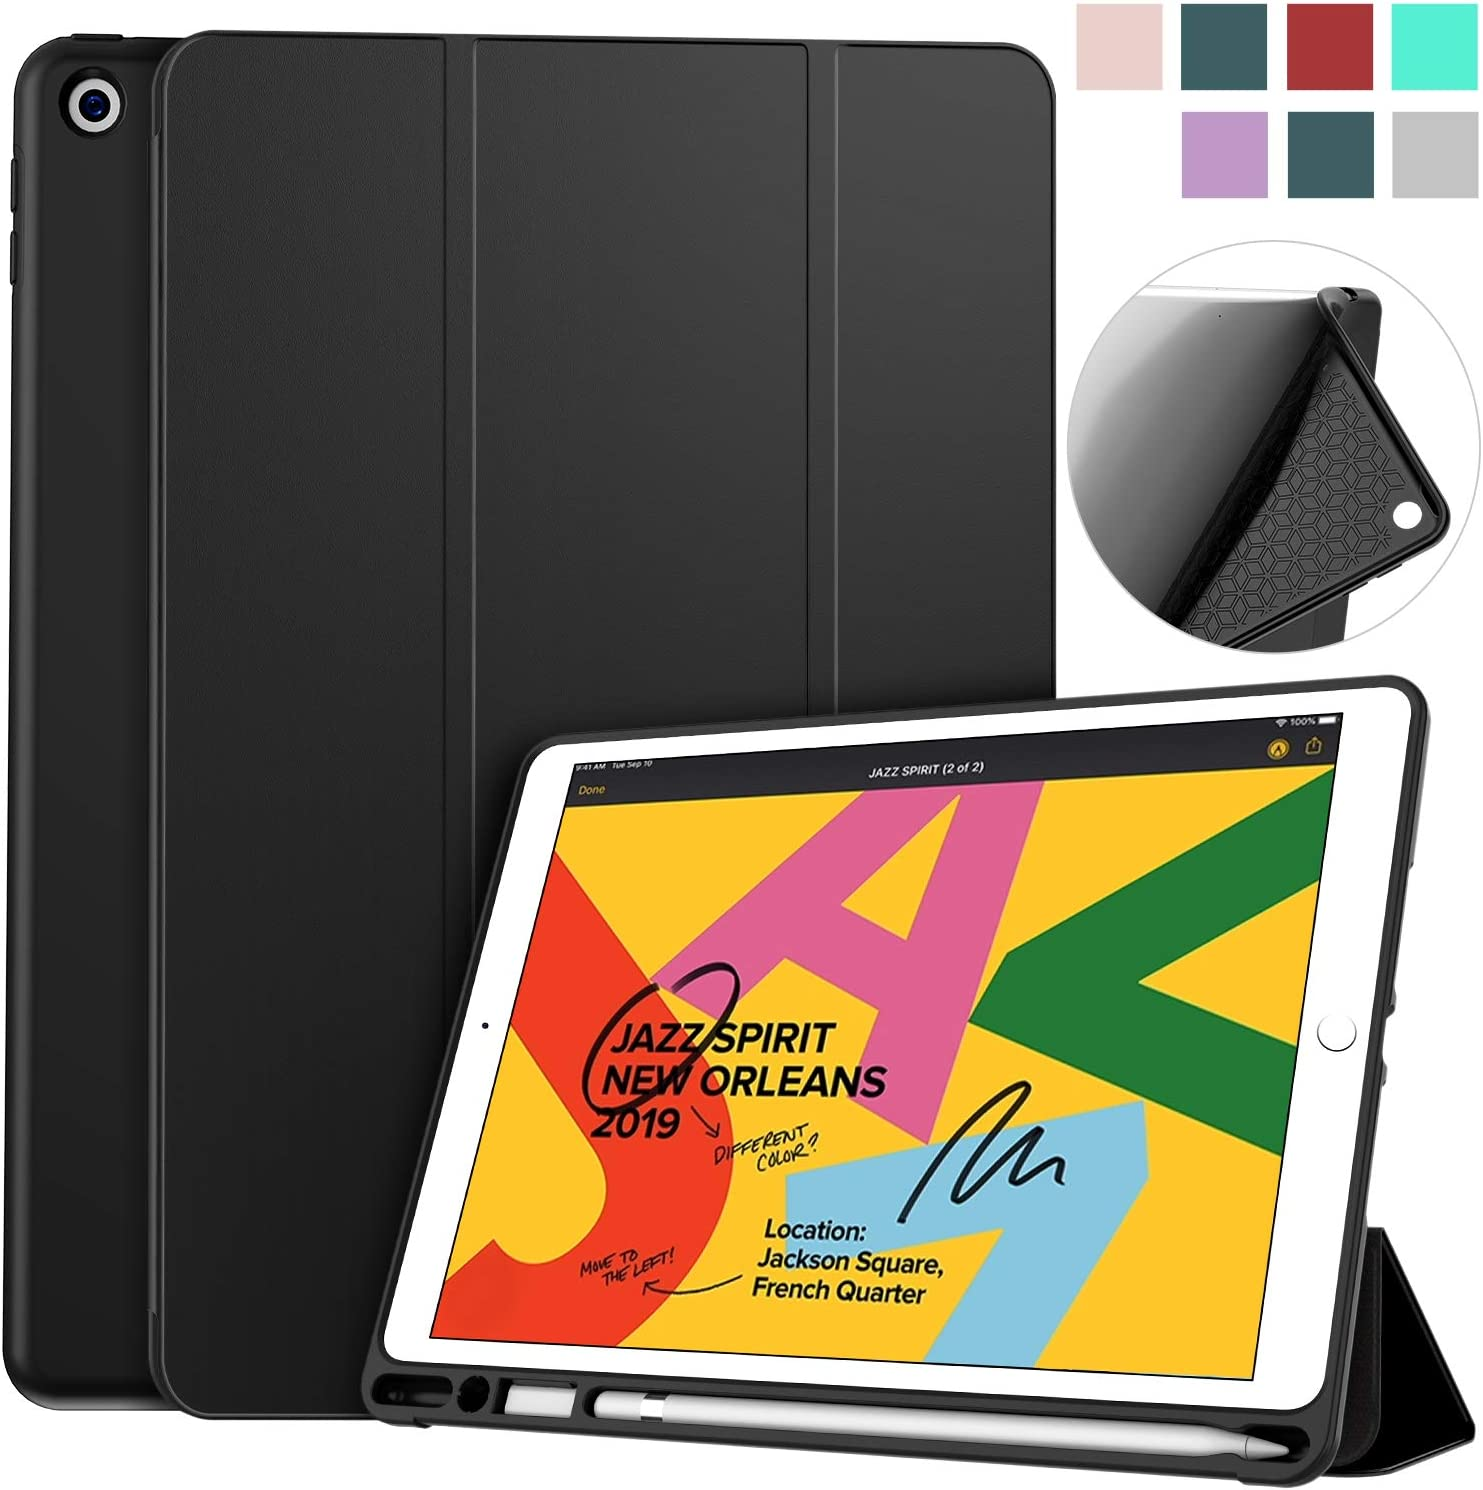 Amazon Com Soke Ipad 7th Generation Case Compatible For Ipad 8th Generation 2020 Release New Ipad Case 10 2 Case With Pencil Holder Lightweight Smart Cover With Soft Tpu Back Auto Sleep Wake For Ipad 7th 8th Gen Computers Accessories